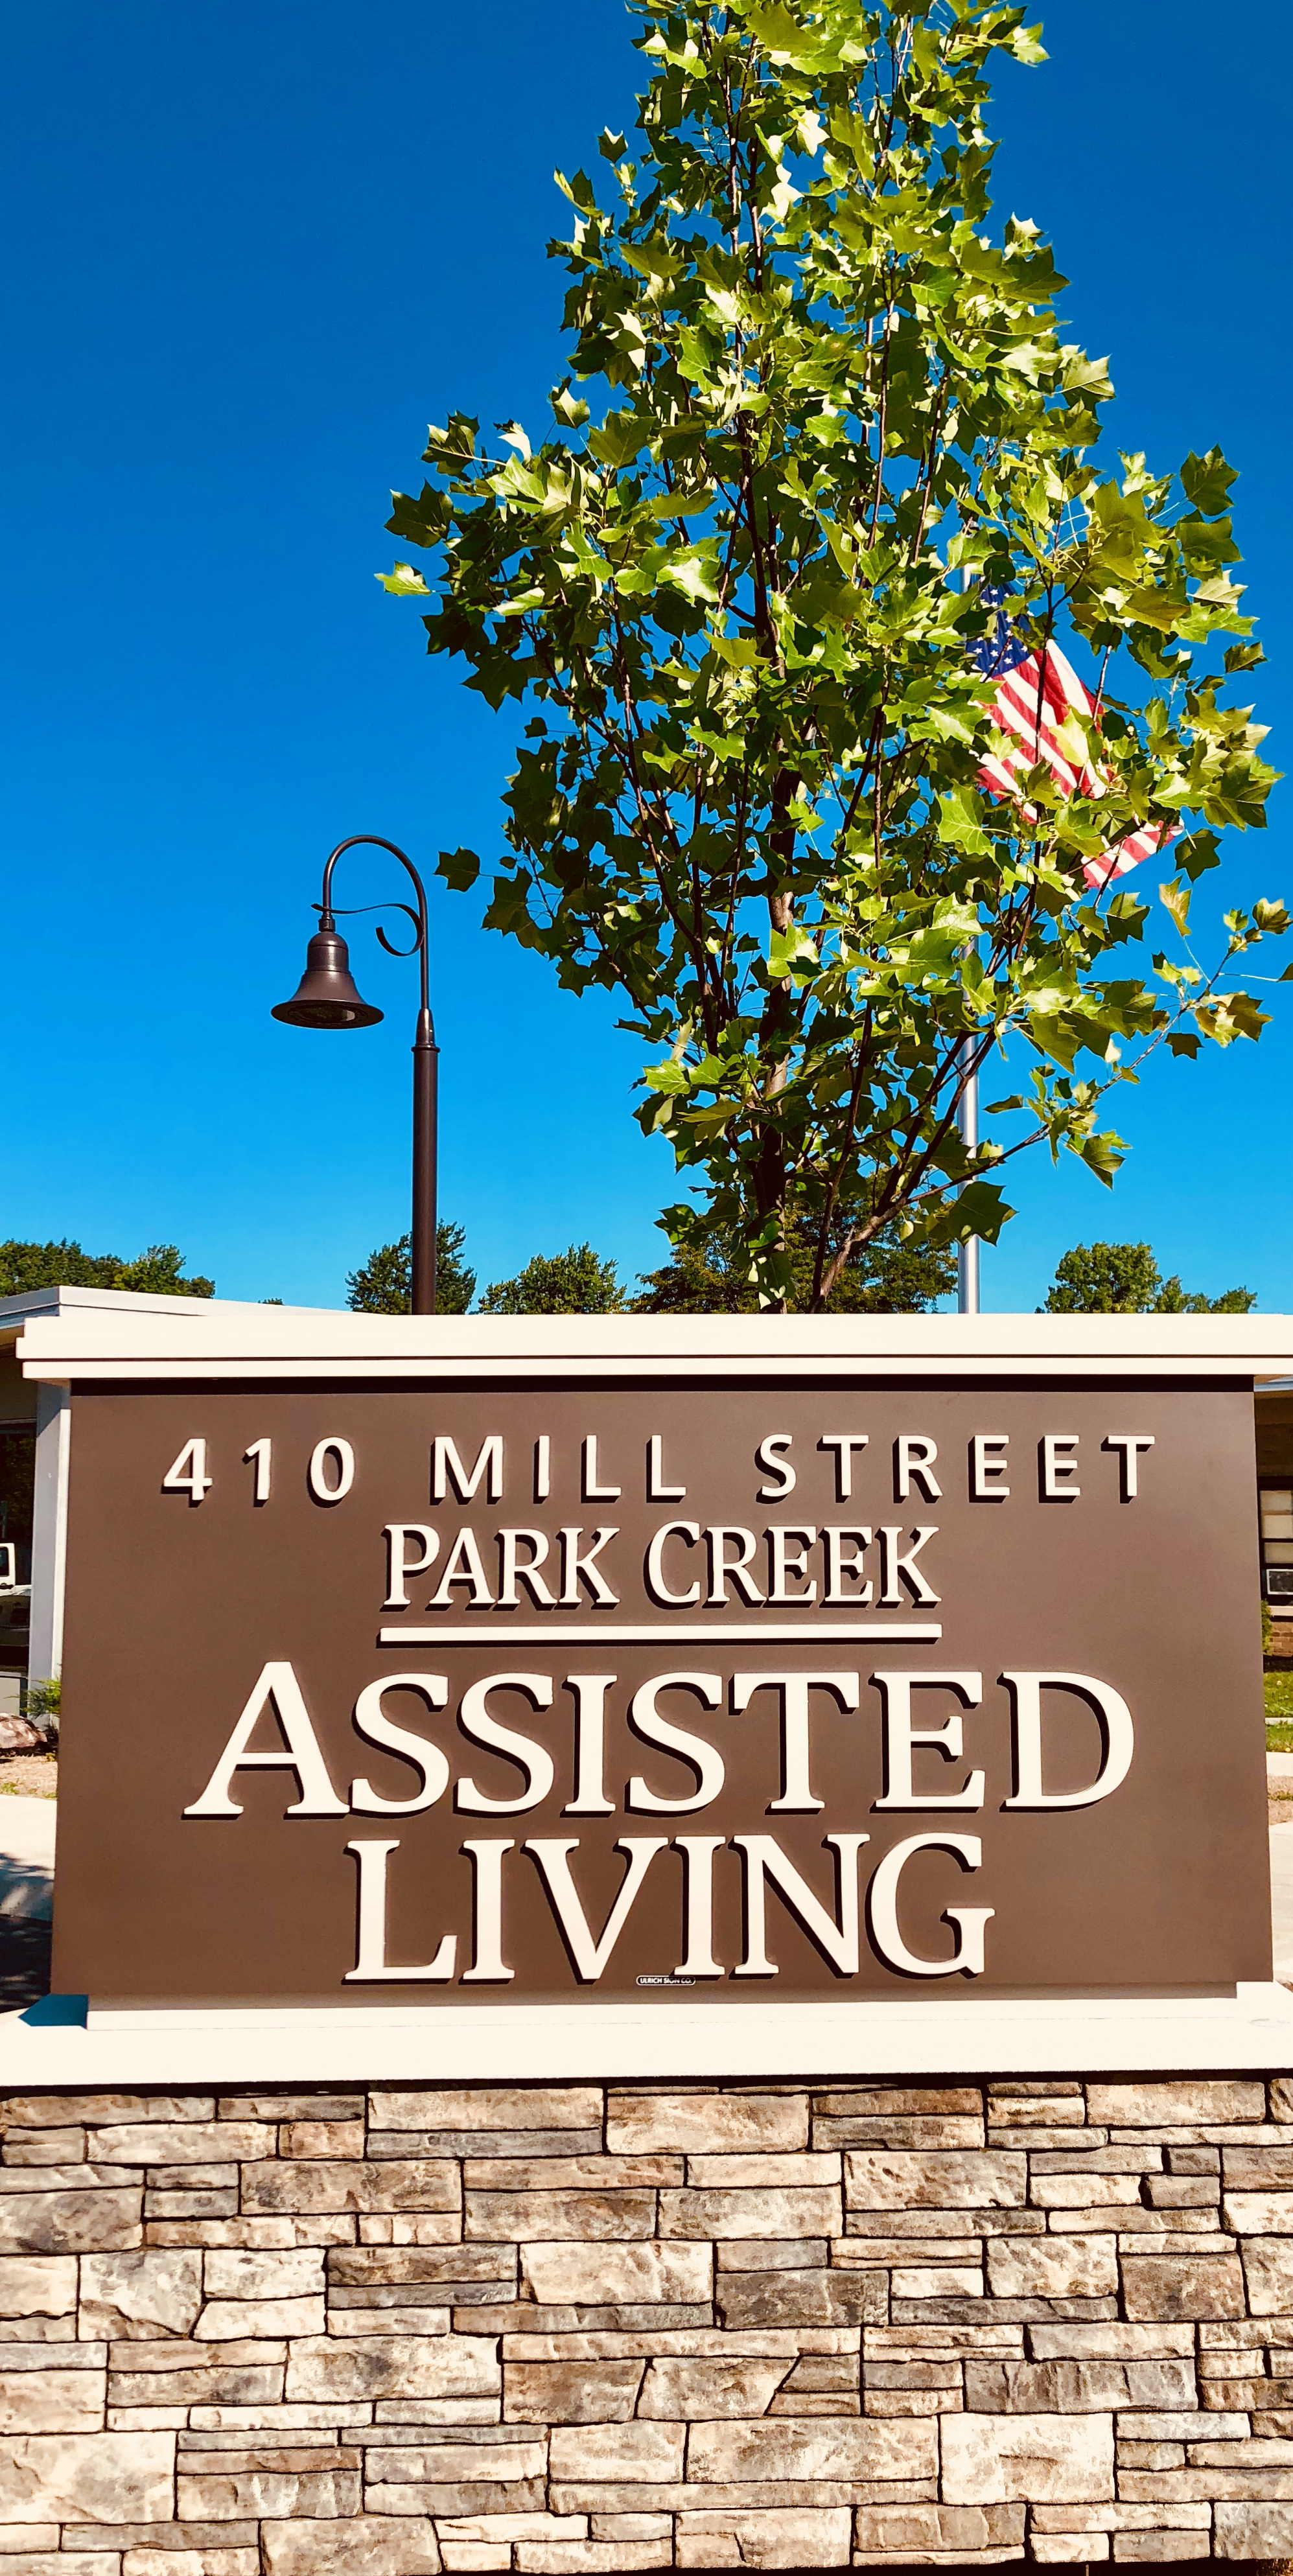 Park Creek Assisted Living Sign